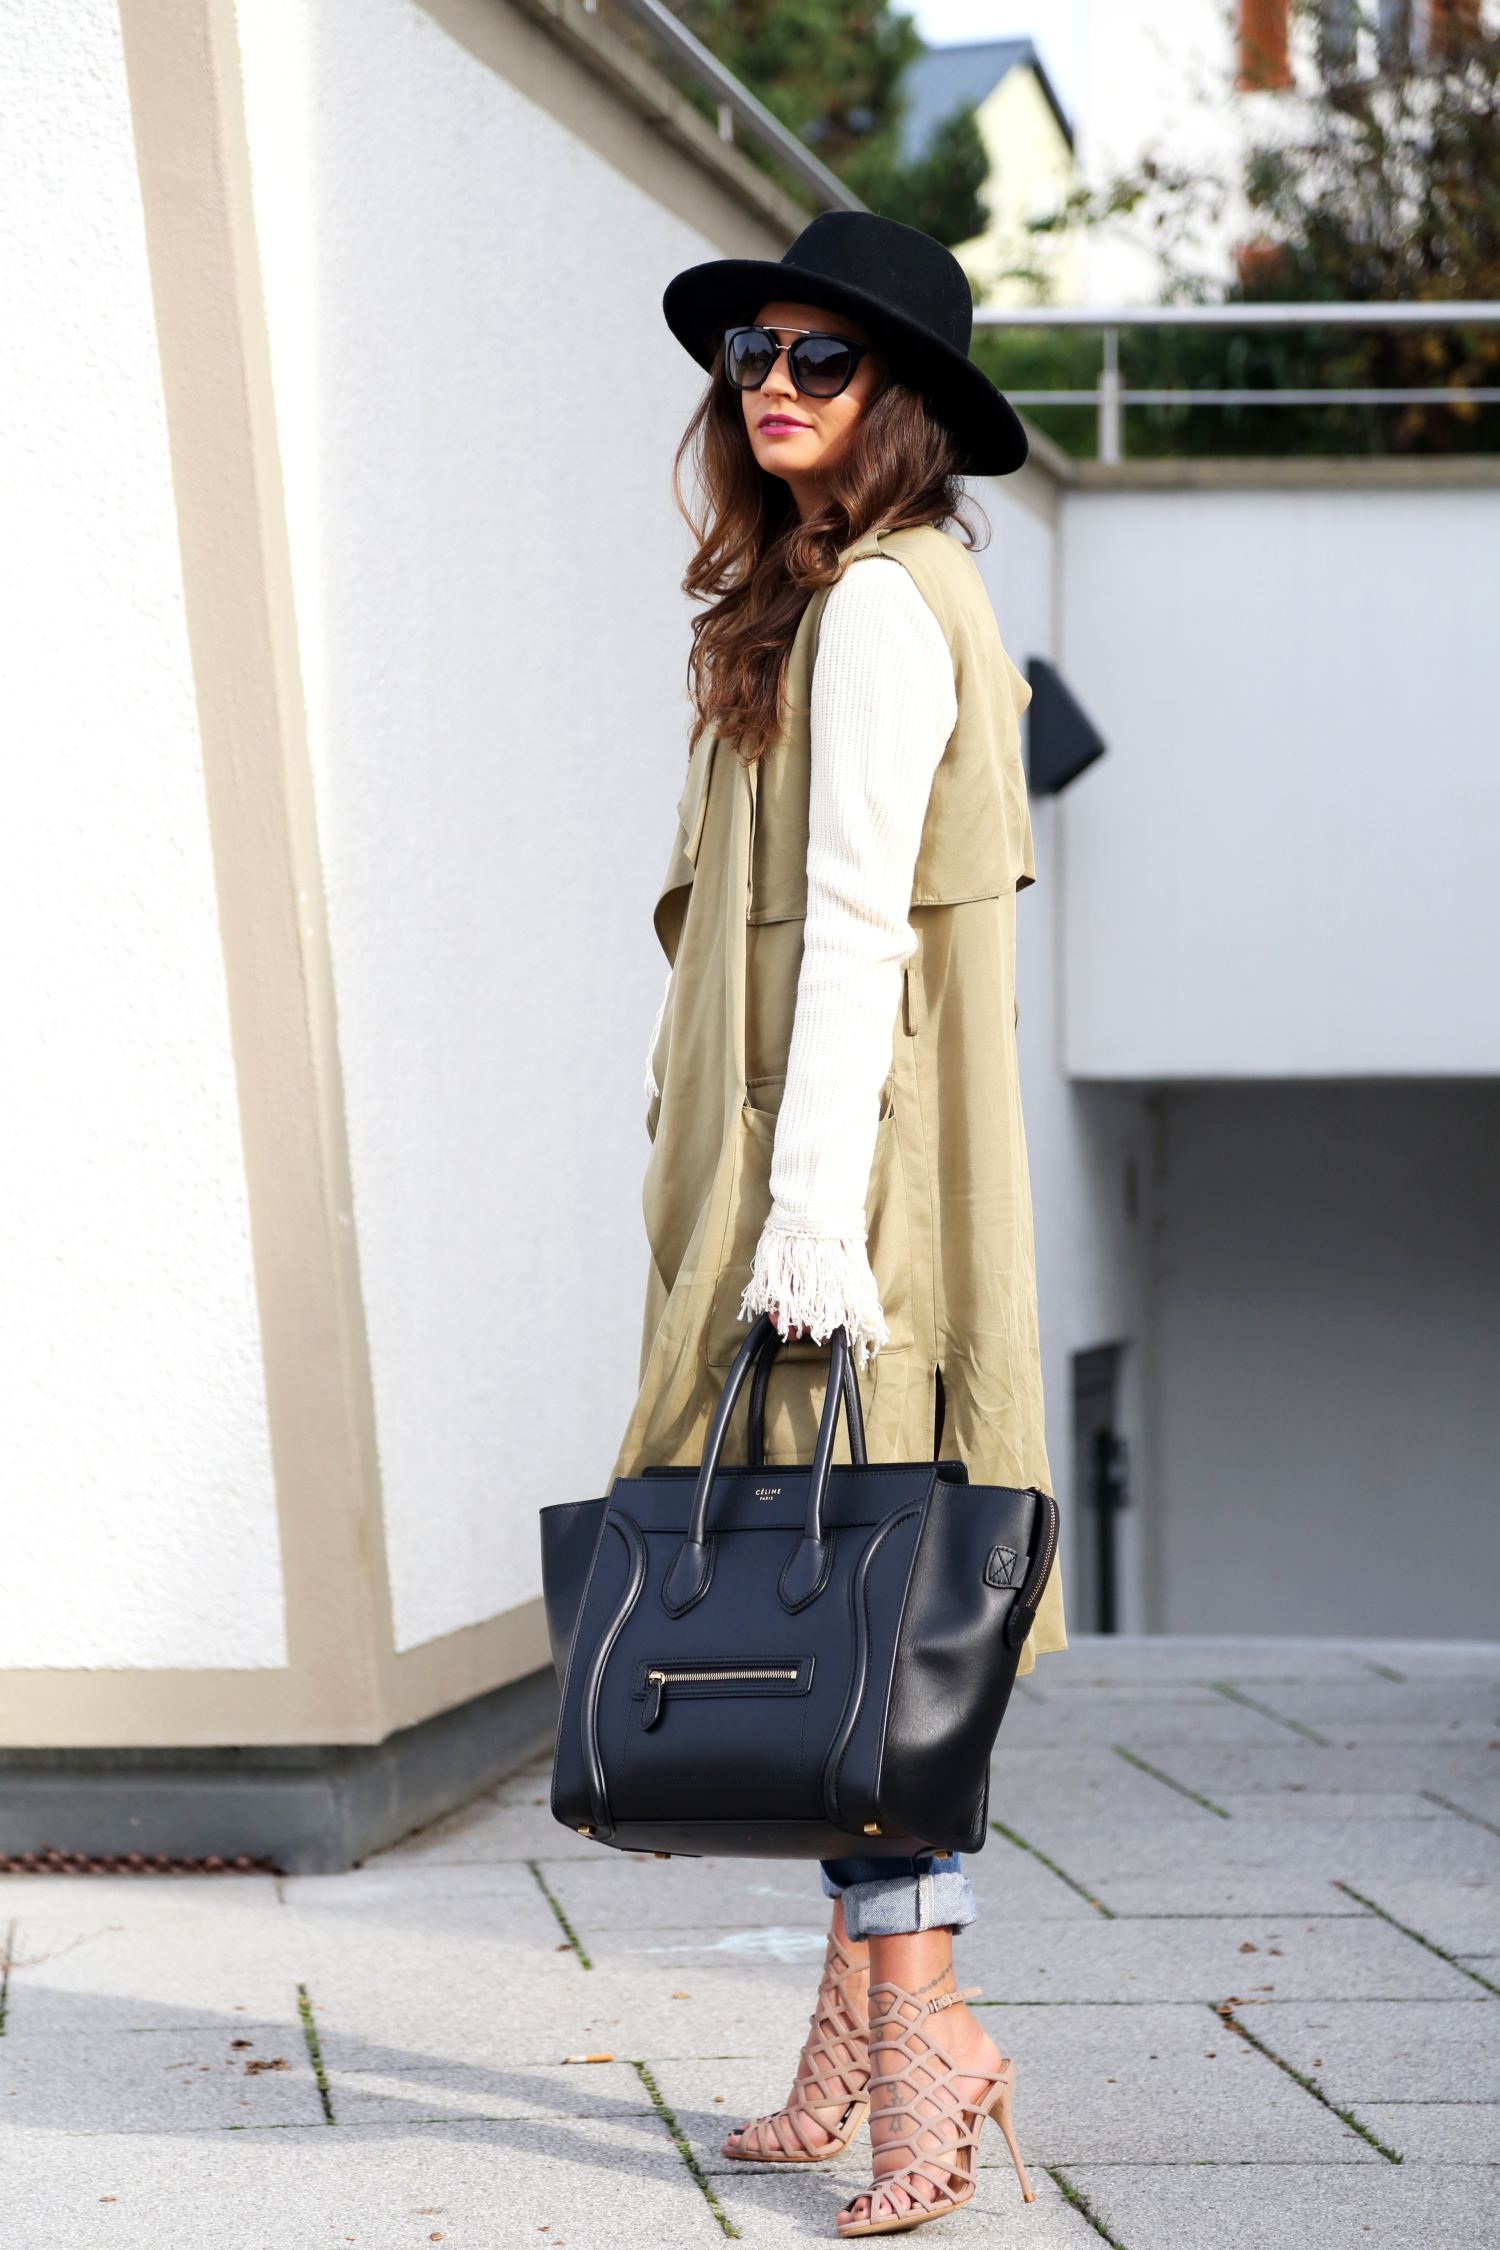 outfit-details-celine-luggage-bag-schutz-sandals-autumn-fall-look-german-fashionblogger